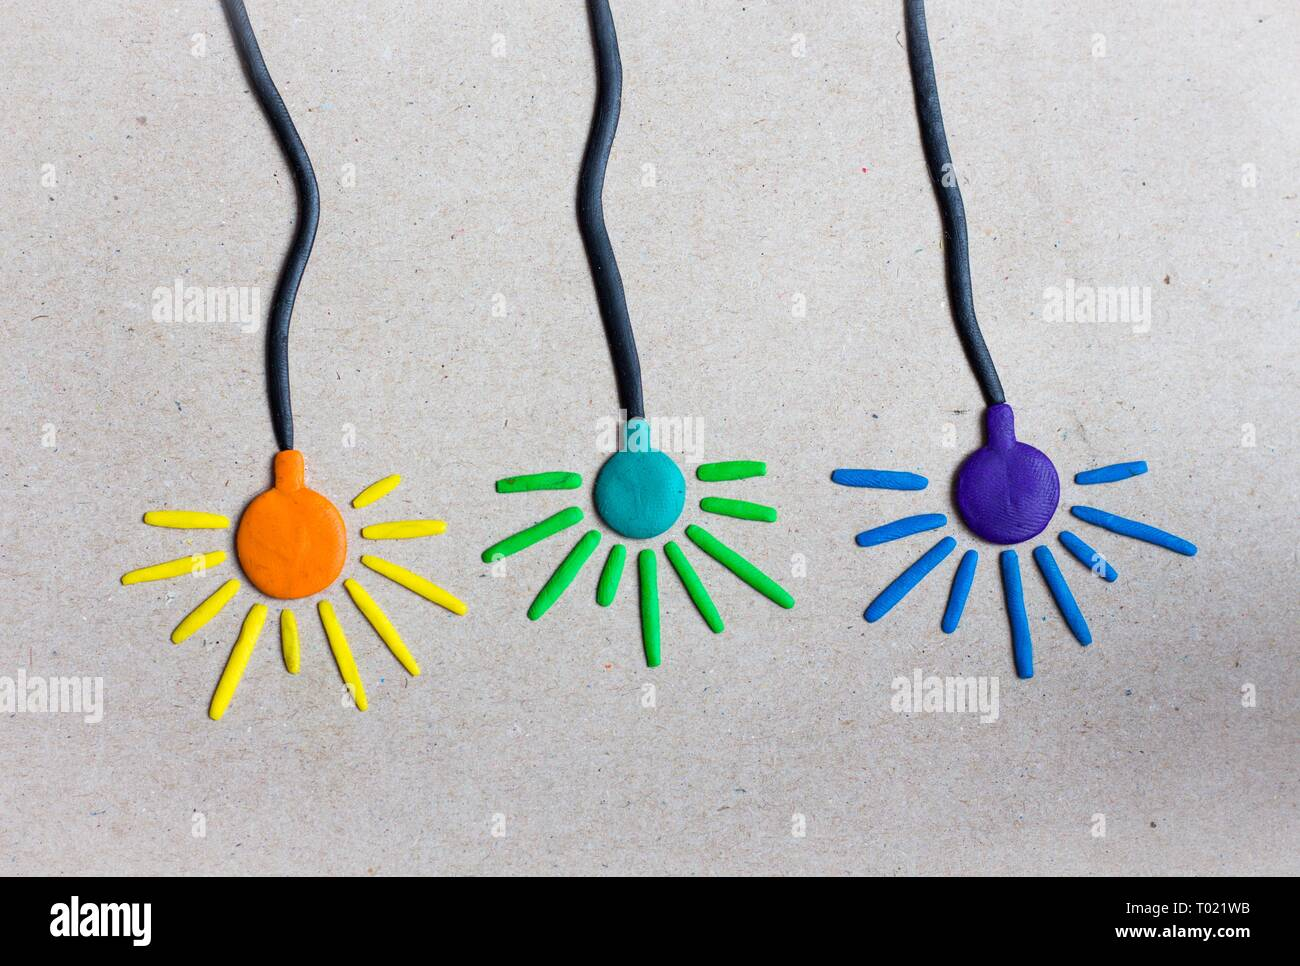 Three colorful lamps of blue, violet and orange colors hang on even wires against a gray wall. Lamps are made of plasticine like the wire and the ligh - Stock Image